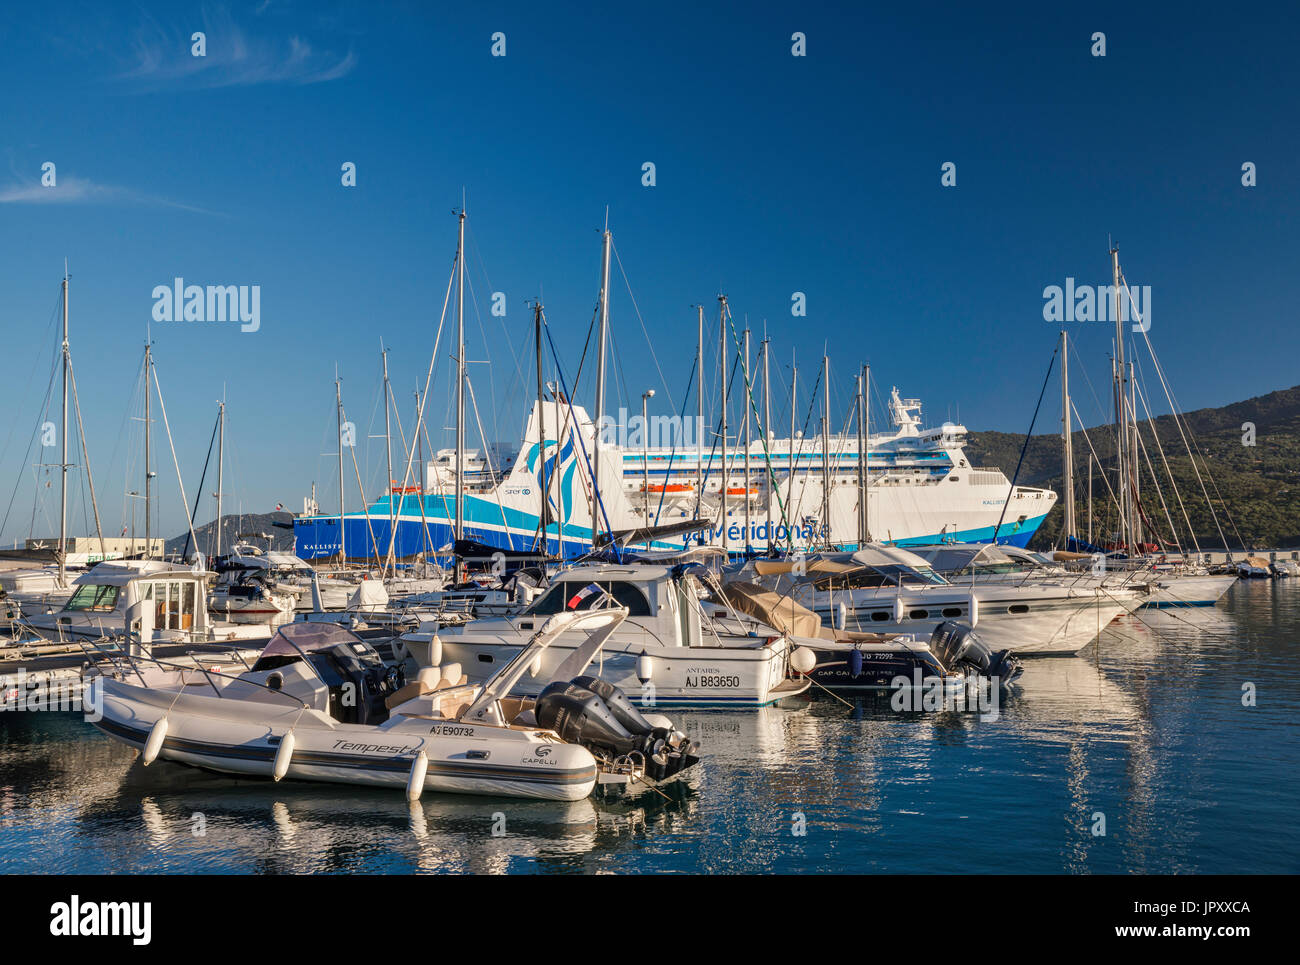 Sailboats at marina, M/F Kalliste ferry at pier behind, at Golfe de Valinco, Propriano, Corse-du-Sud, Corsica, France - Stock Image